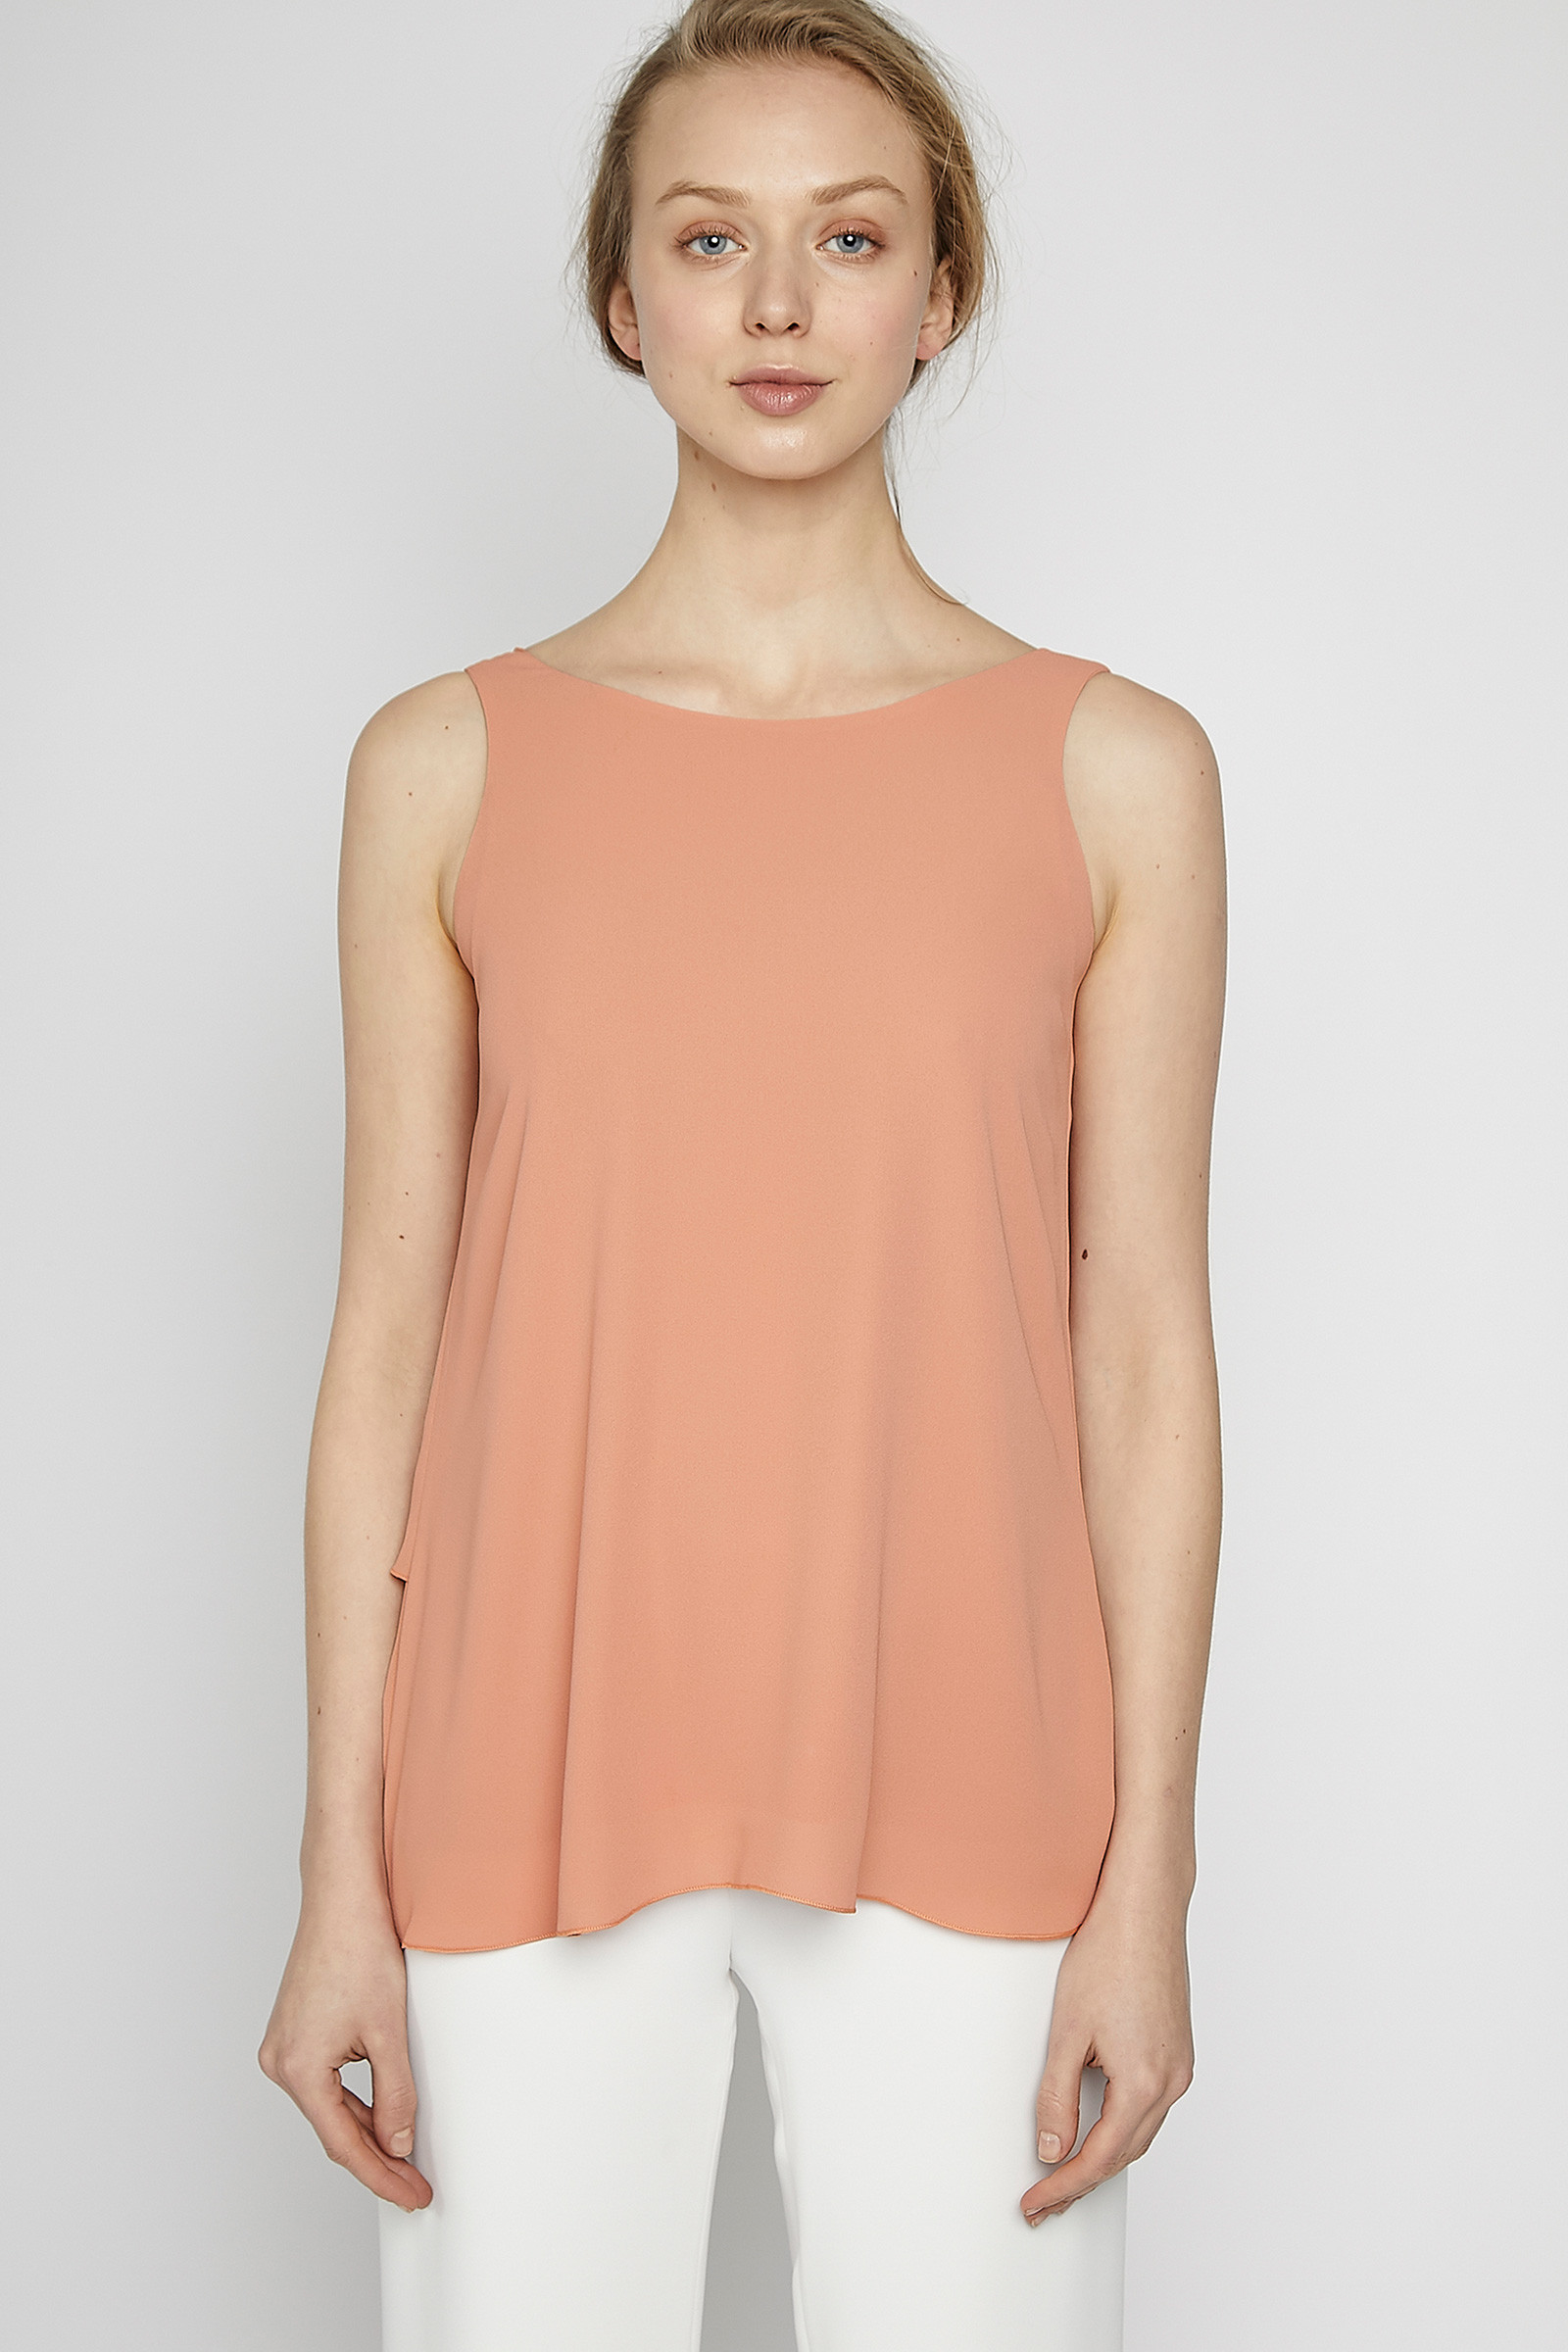 Peach Color Crossed Top front